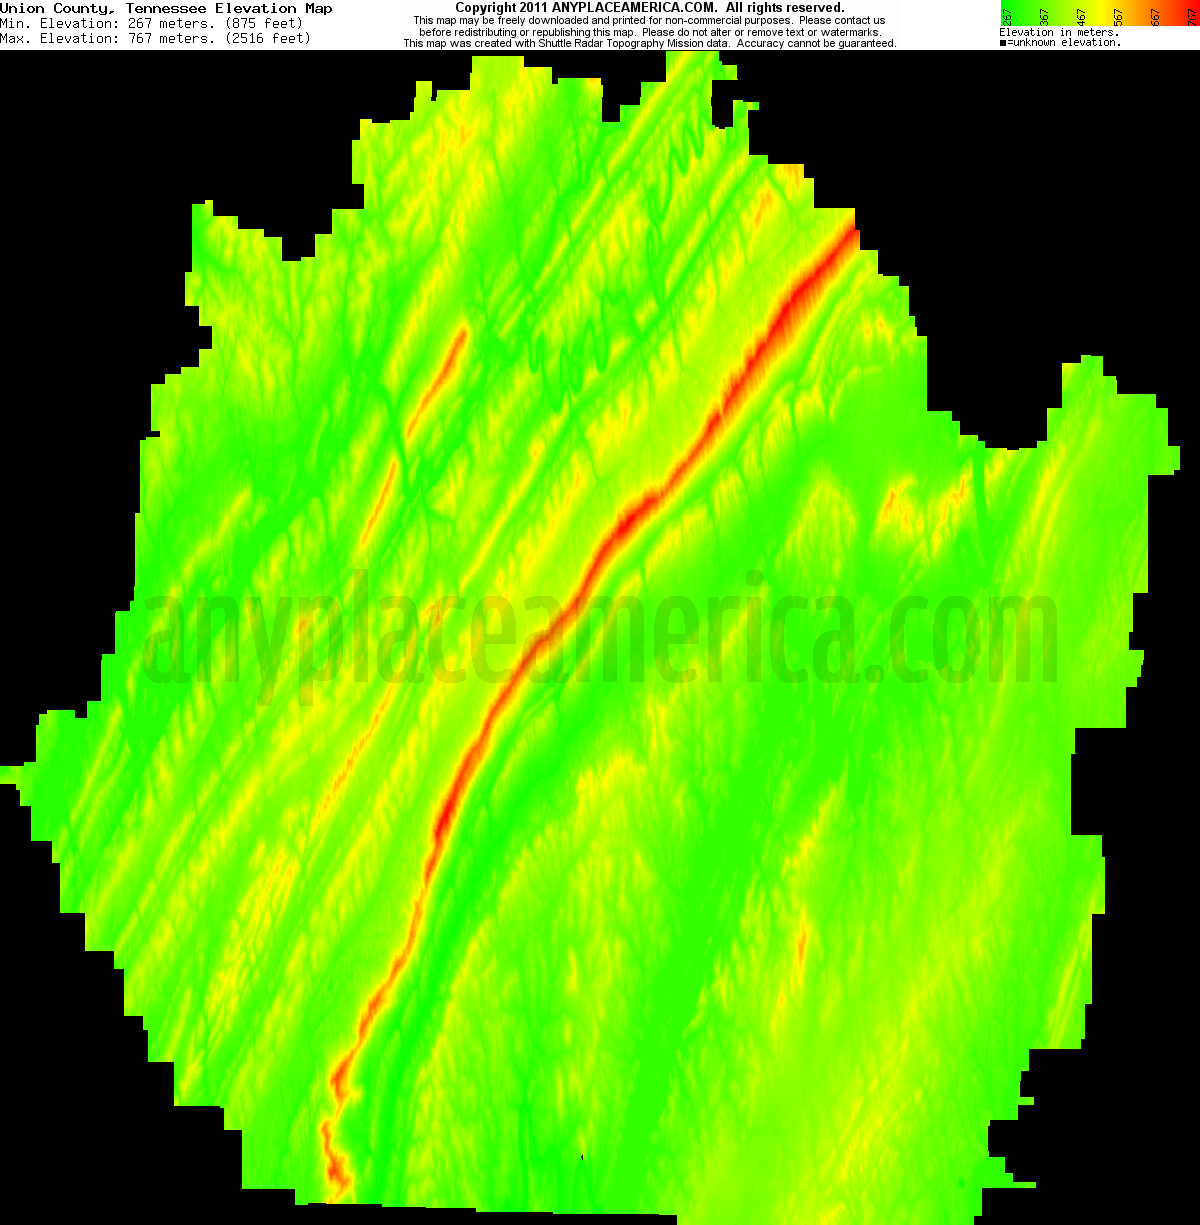 download union county elevation map